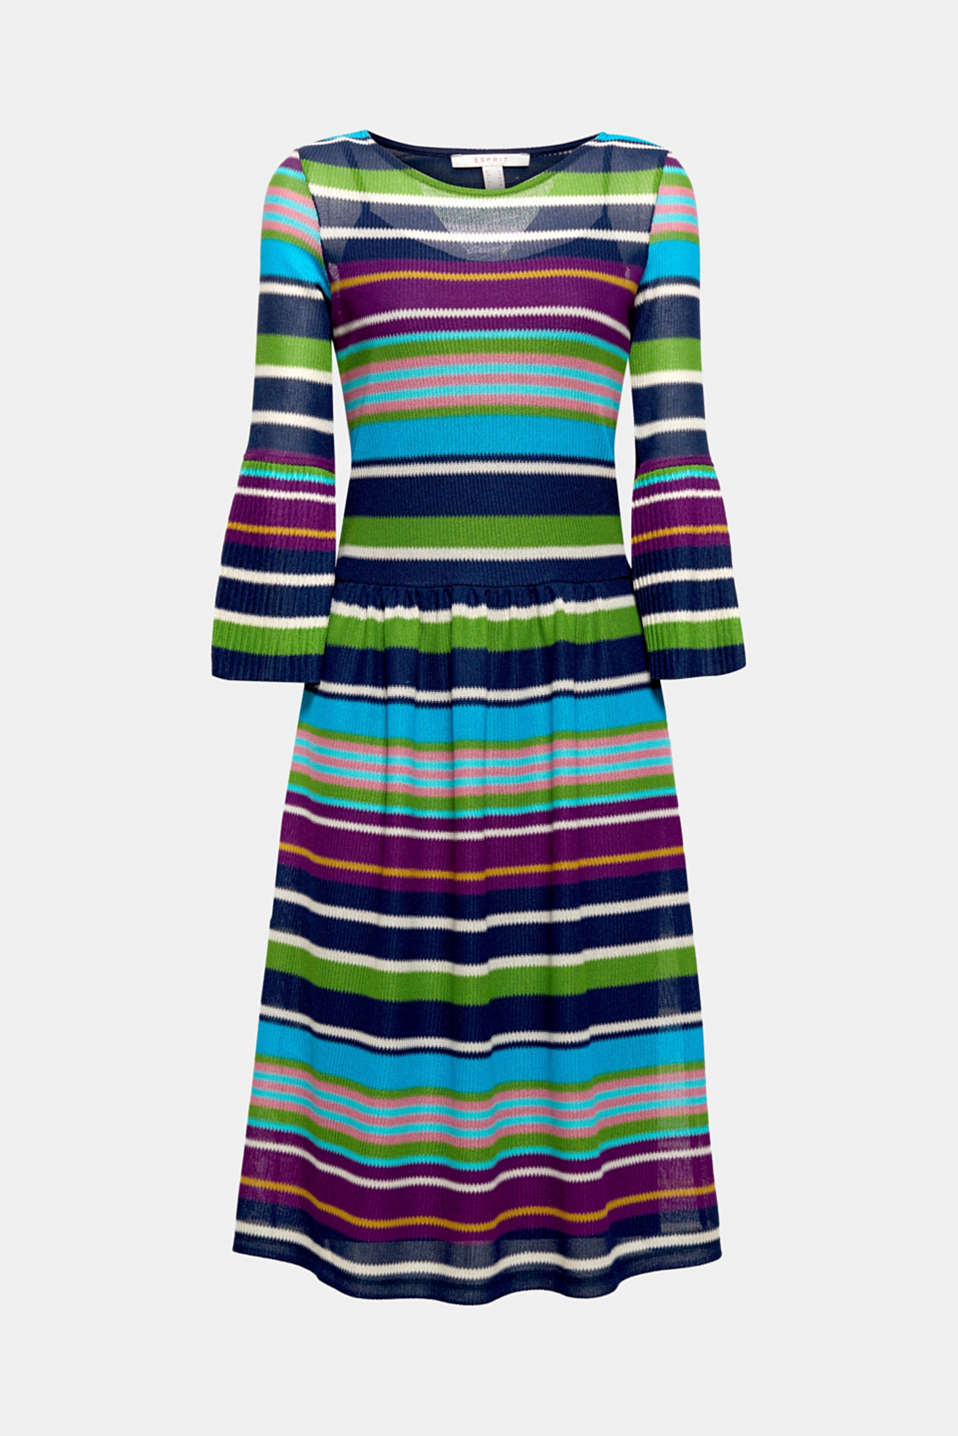 This midi dress made from lightweight mesh will impress you with its colourful striped pattern and feminine pleated details. The soft jersey slip provides exceptional comfort.